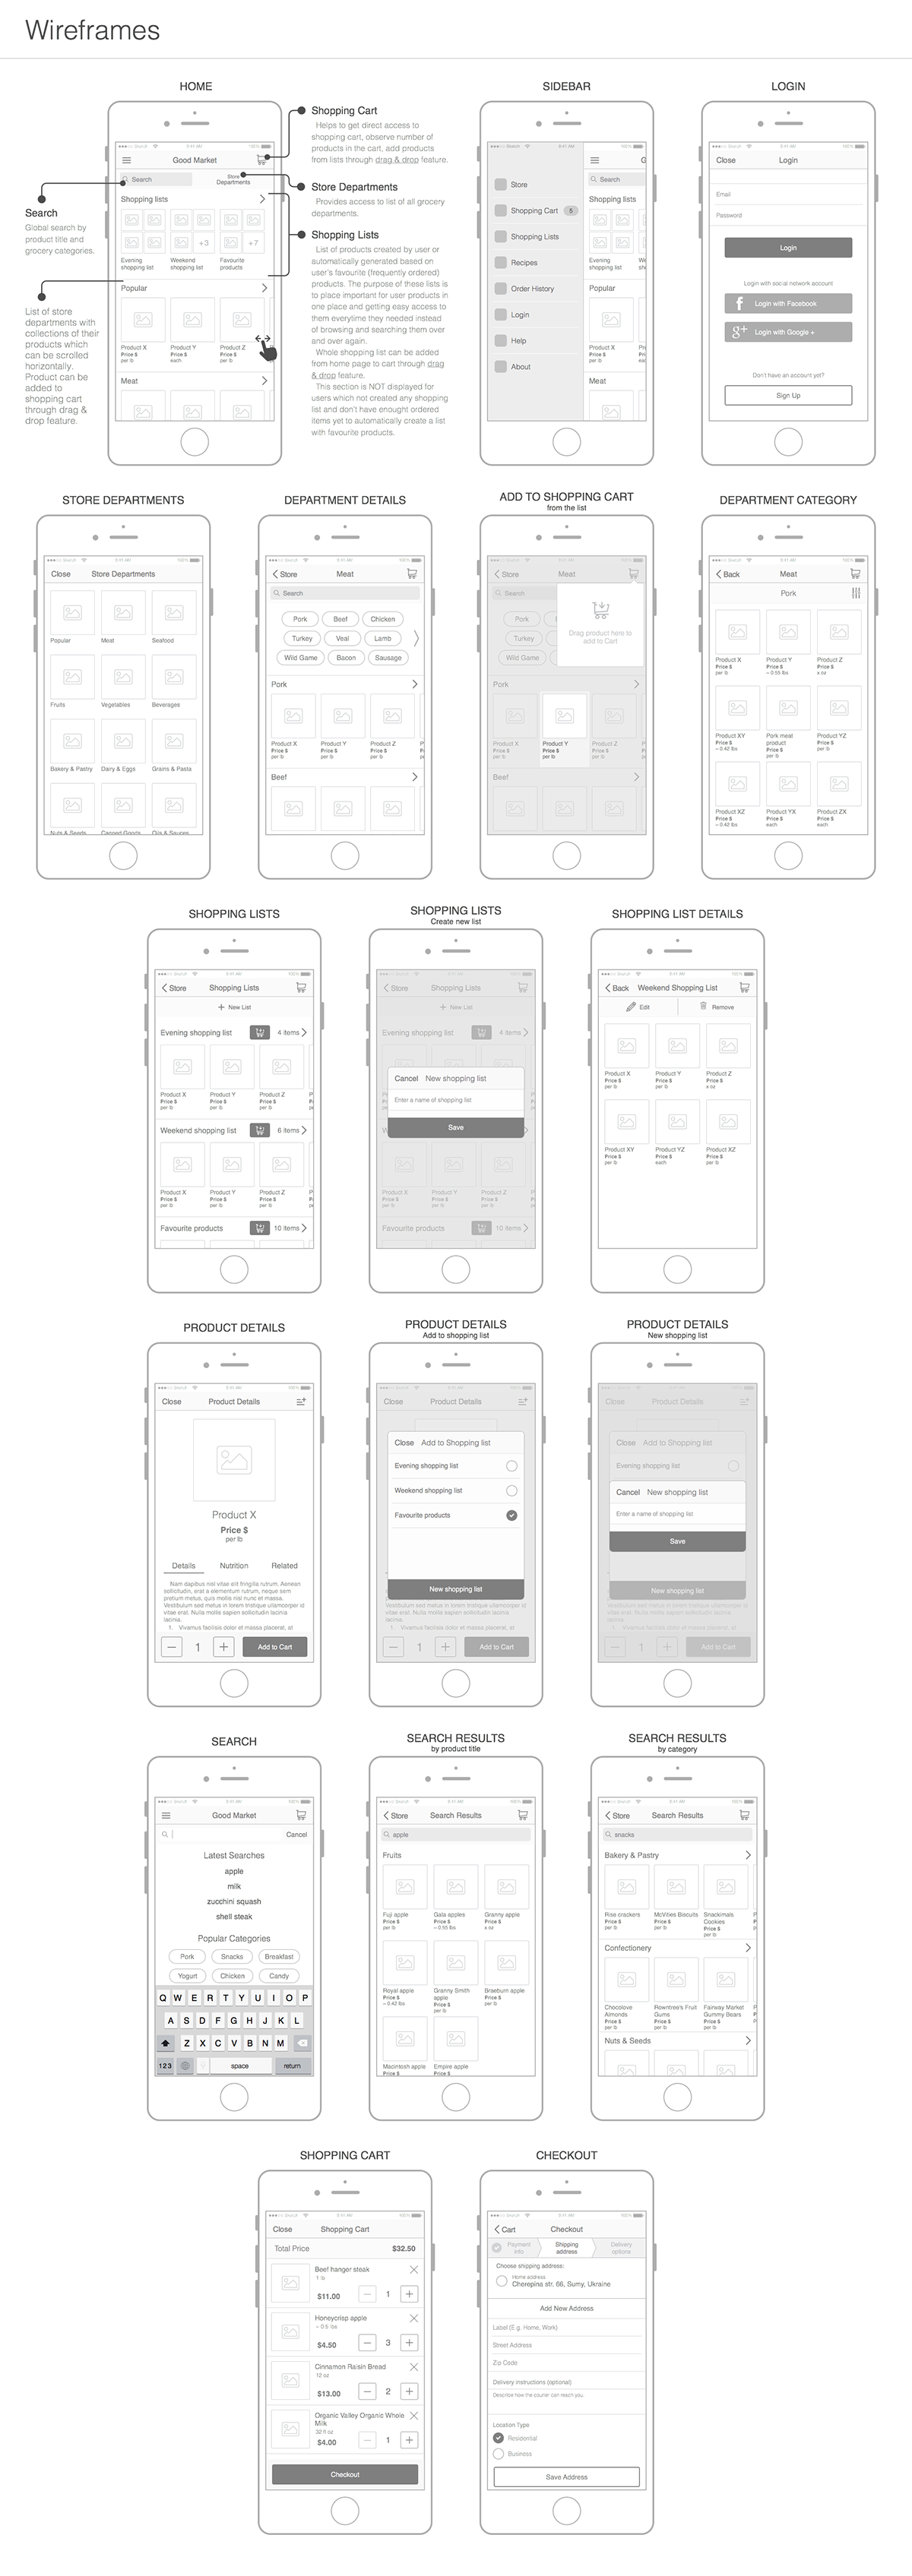 Website wireframe png. Ux wireframes for mobile